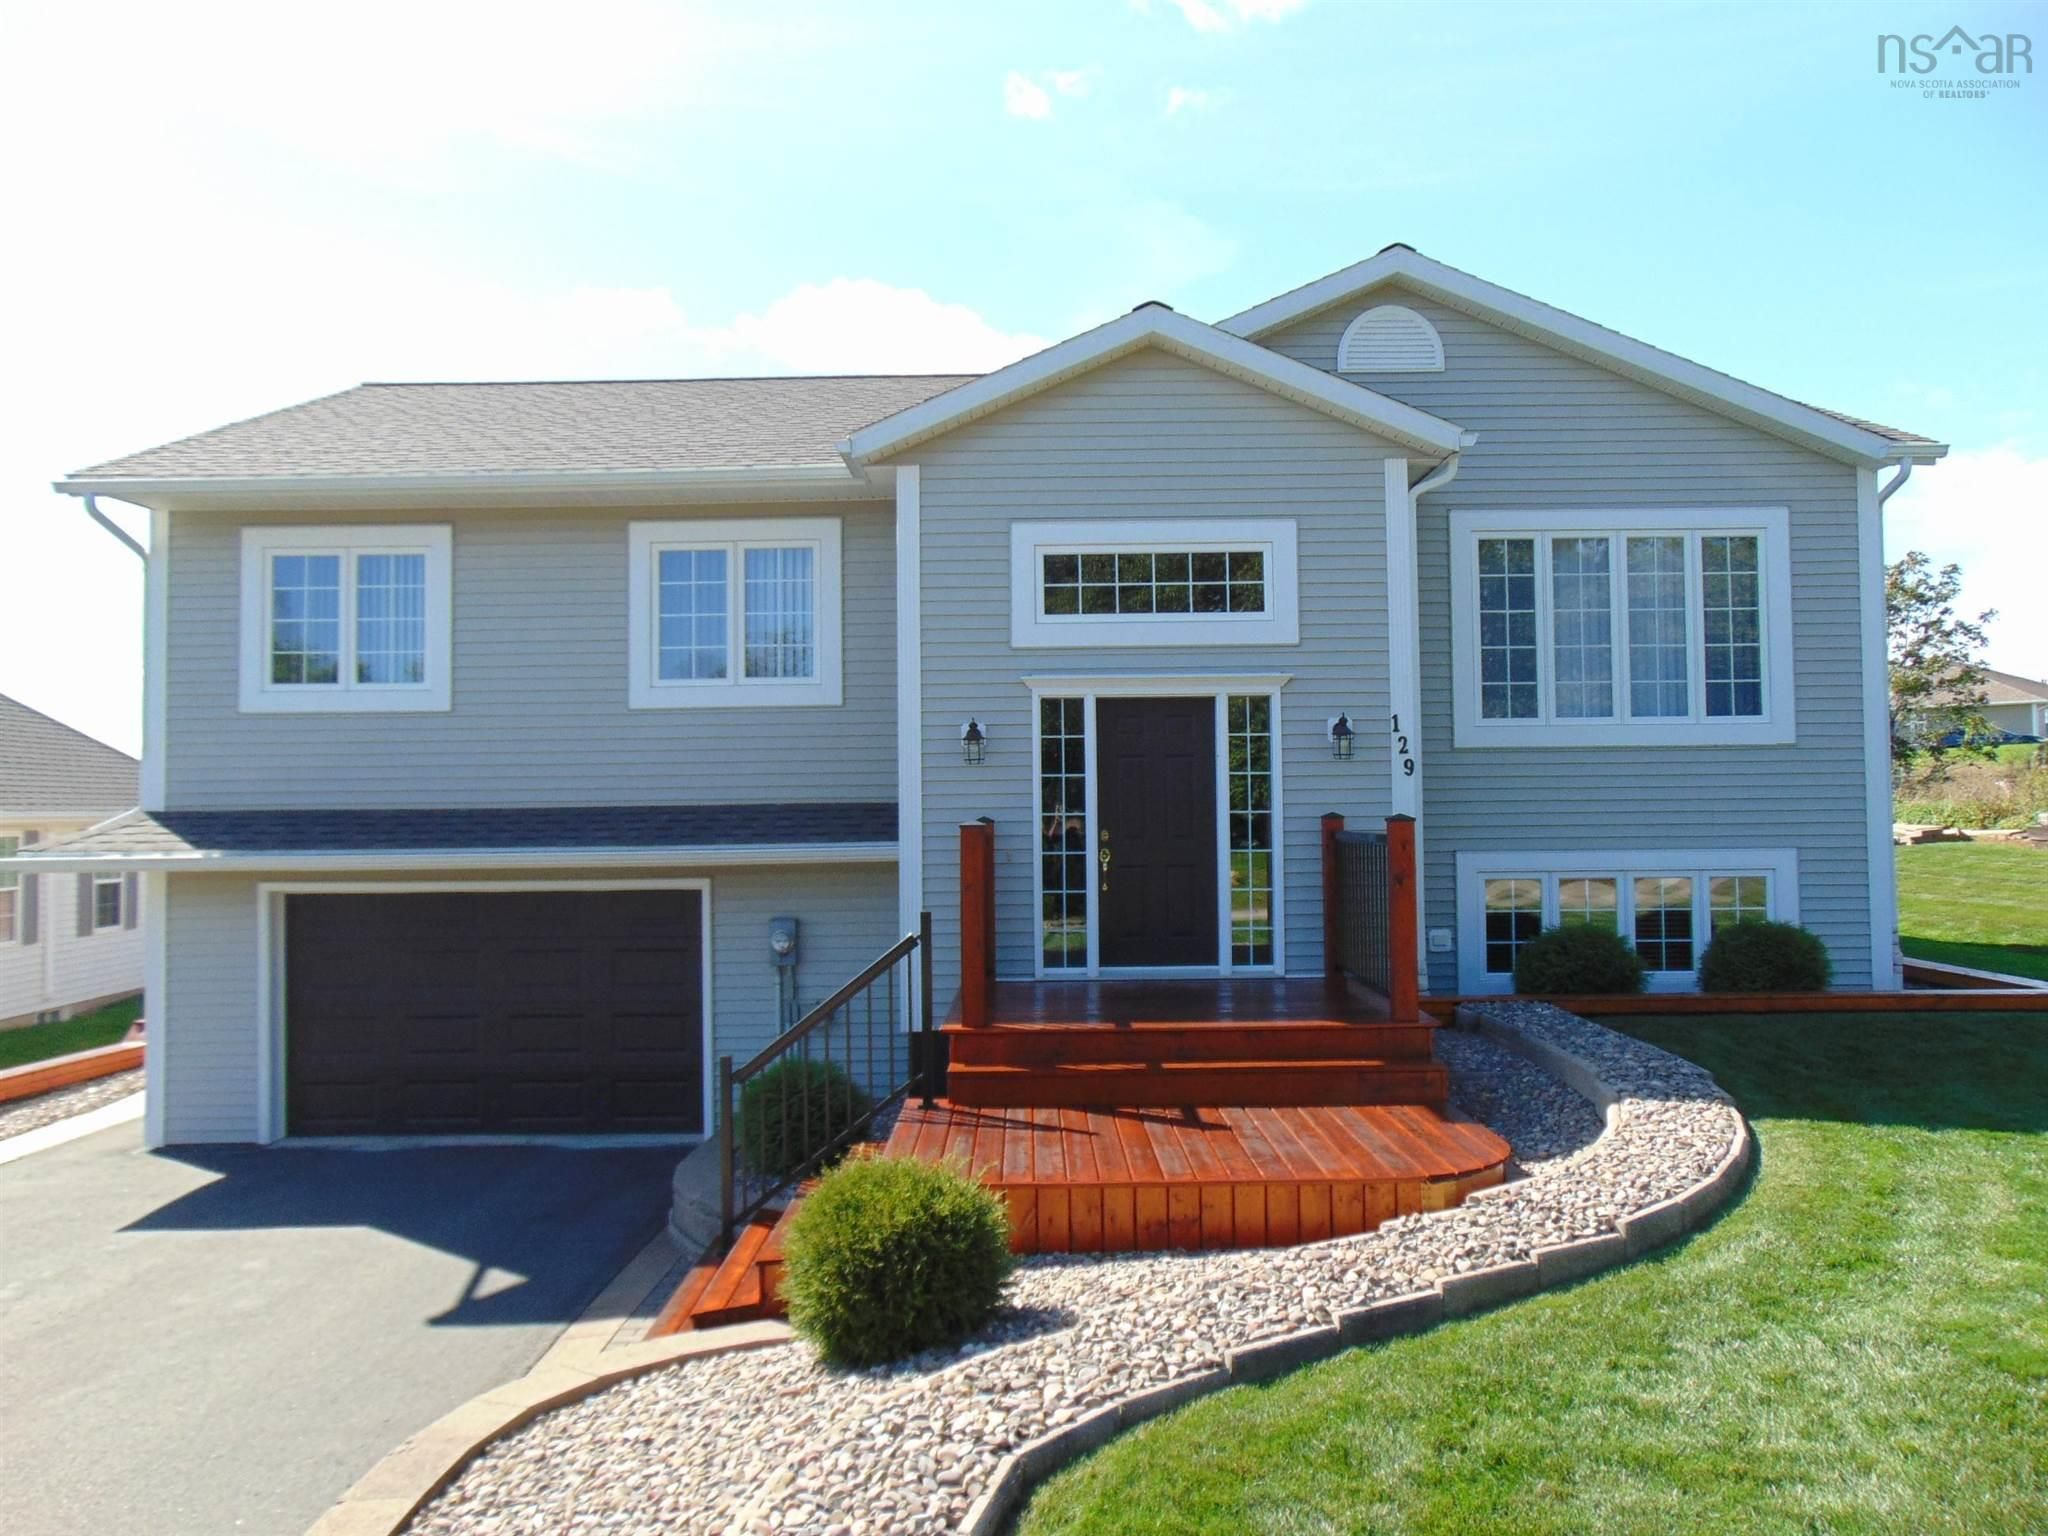 Main Photo: 129 Eagle Creek Road in North Kentville: 404-Kings County Residential for sale (Annapolis Valley)  : MLS®# 202125031